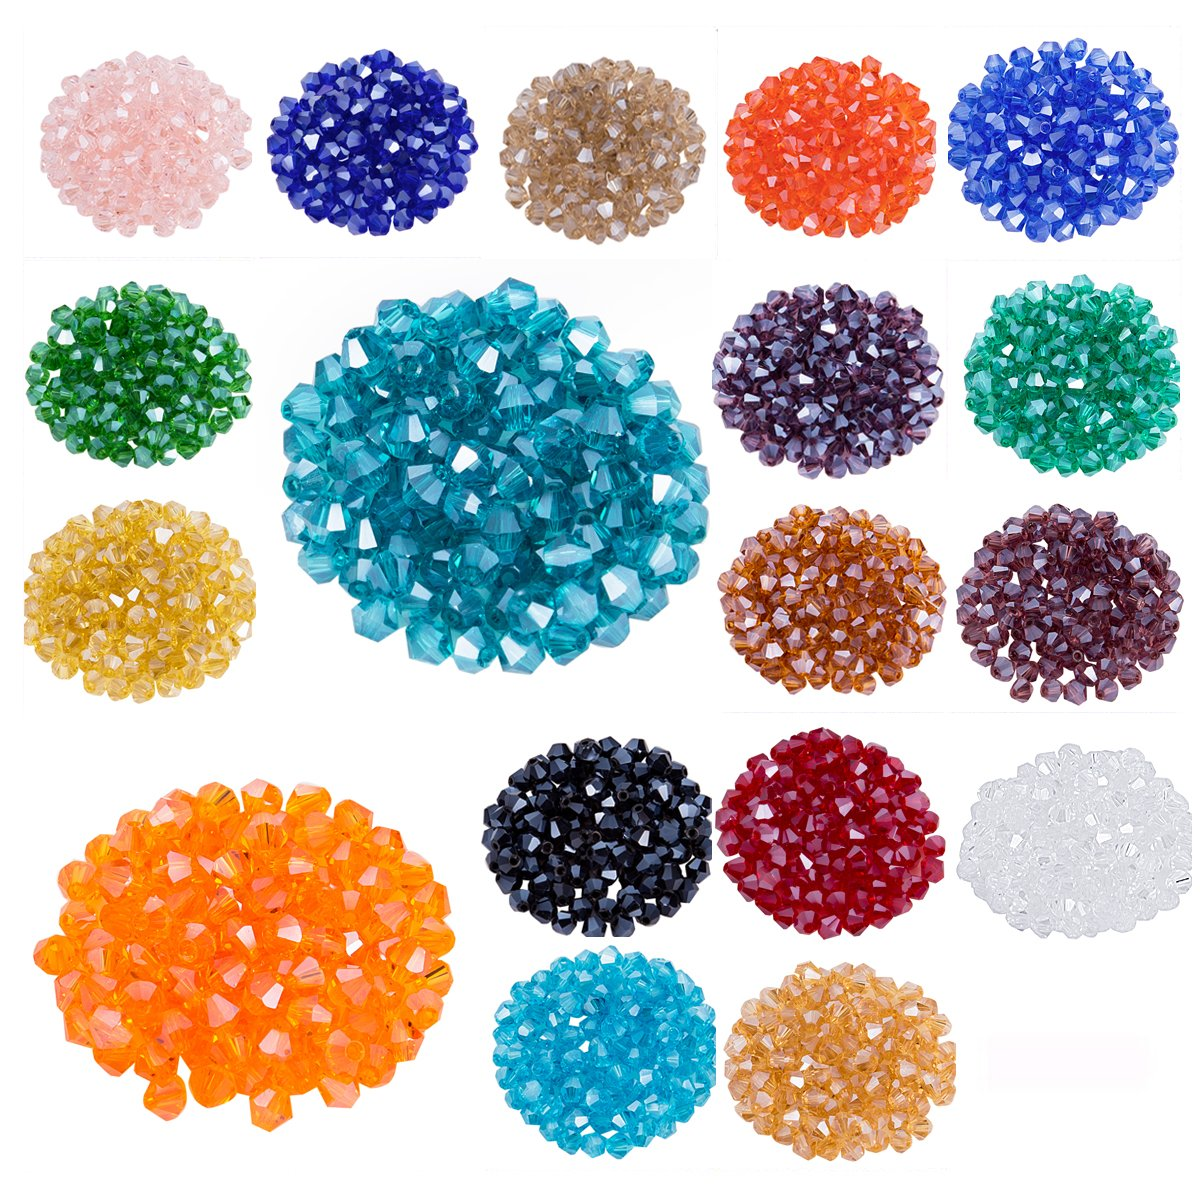 Lot 1800pcs Glass Bicone Beads - LONGWIN Wholesale 4mm Bicone Shaped Crystal Faceted Beads Jewelry Making Supply for DIY Beading Projects, Bracelets, Necklaces, Earrings & Other Jewelries (Color 2) by LONGWIN